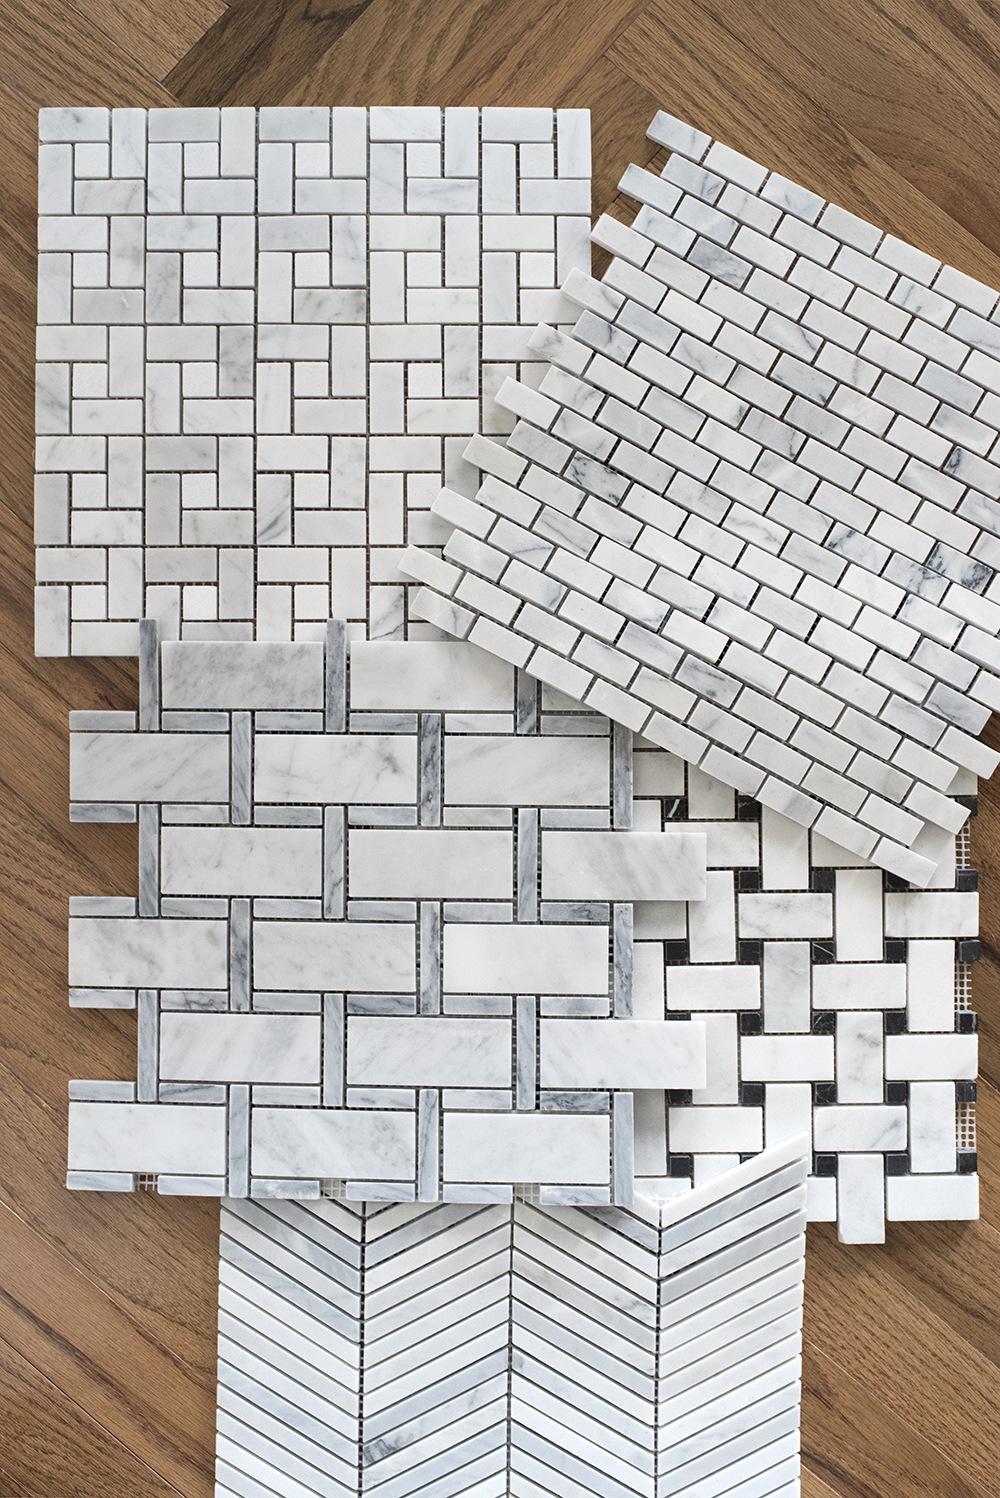 My Favorite Affordable & Classic Backsplash Tile Options - roomfortuesday.com